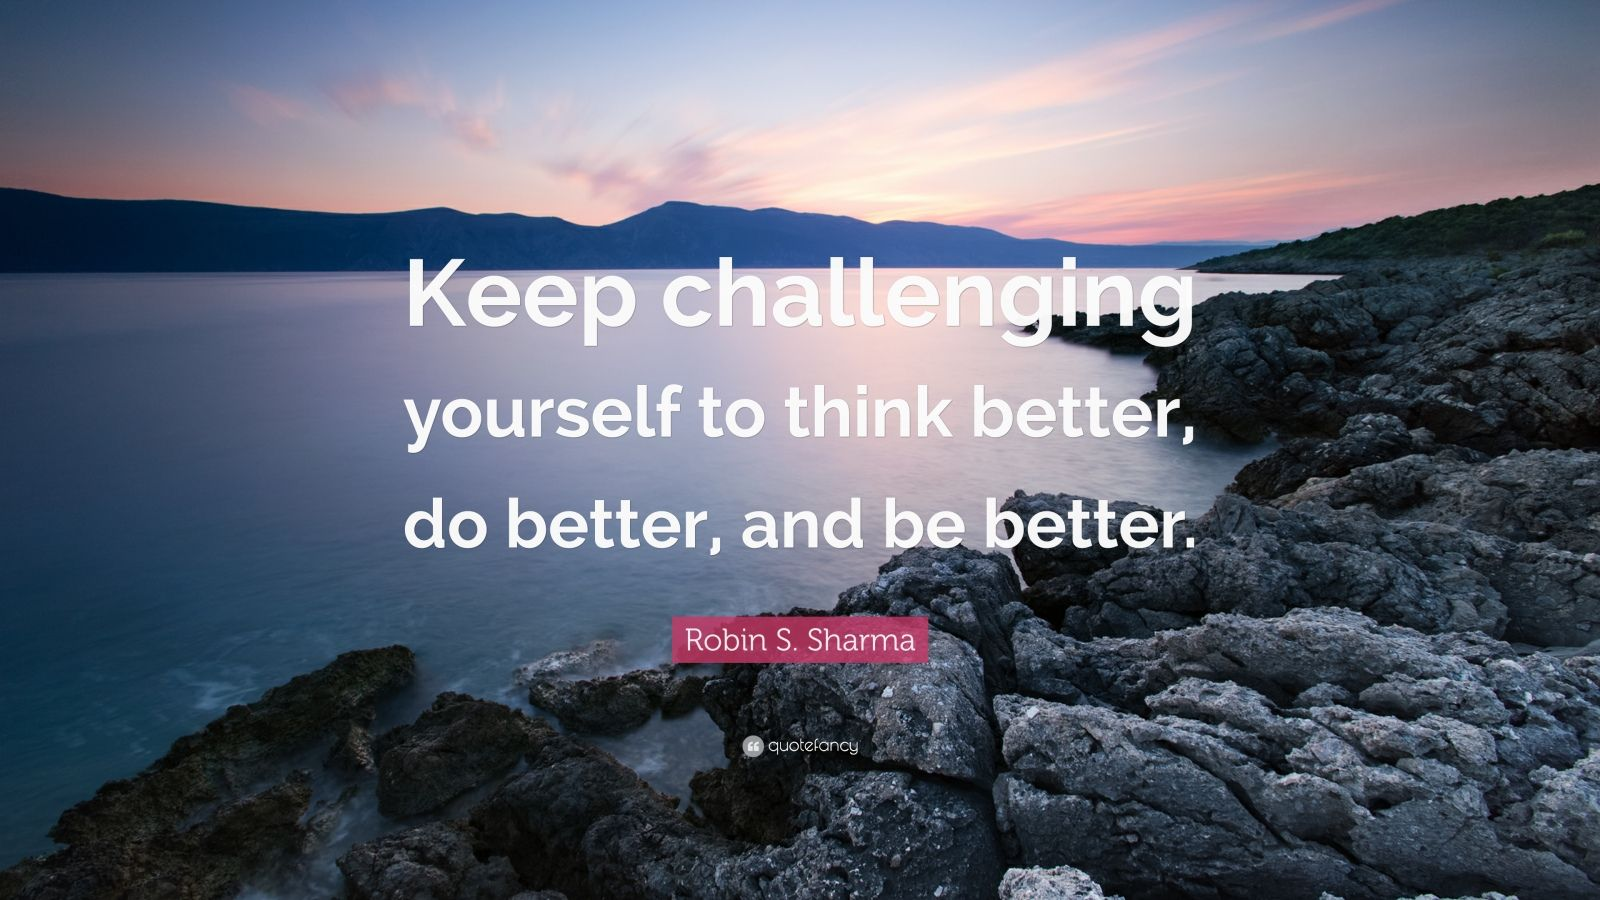 """Robin S. Sharma Quote: """"Keep challenging yourself to think better, do better, and be better."""""""